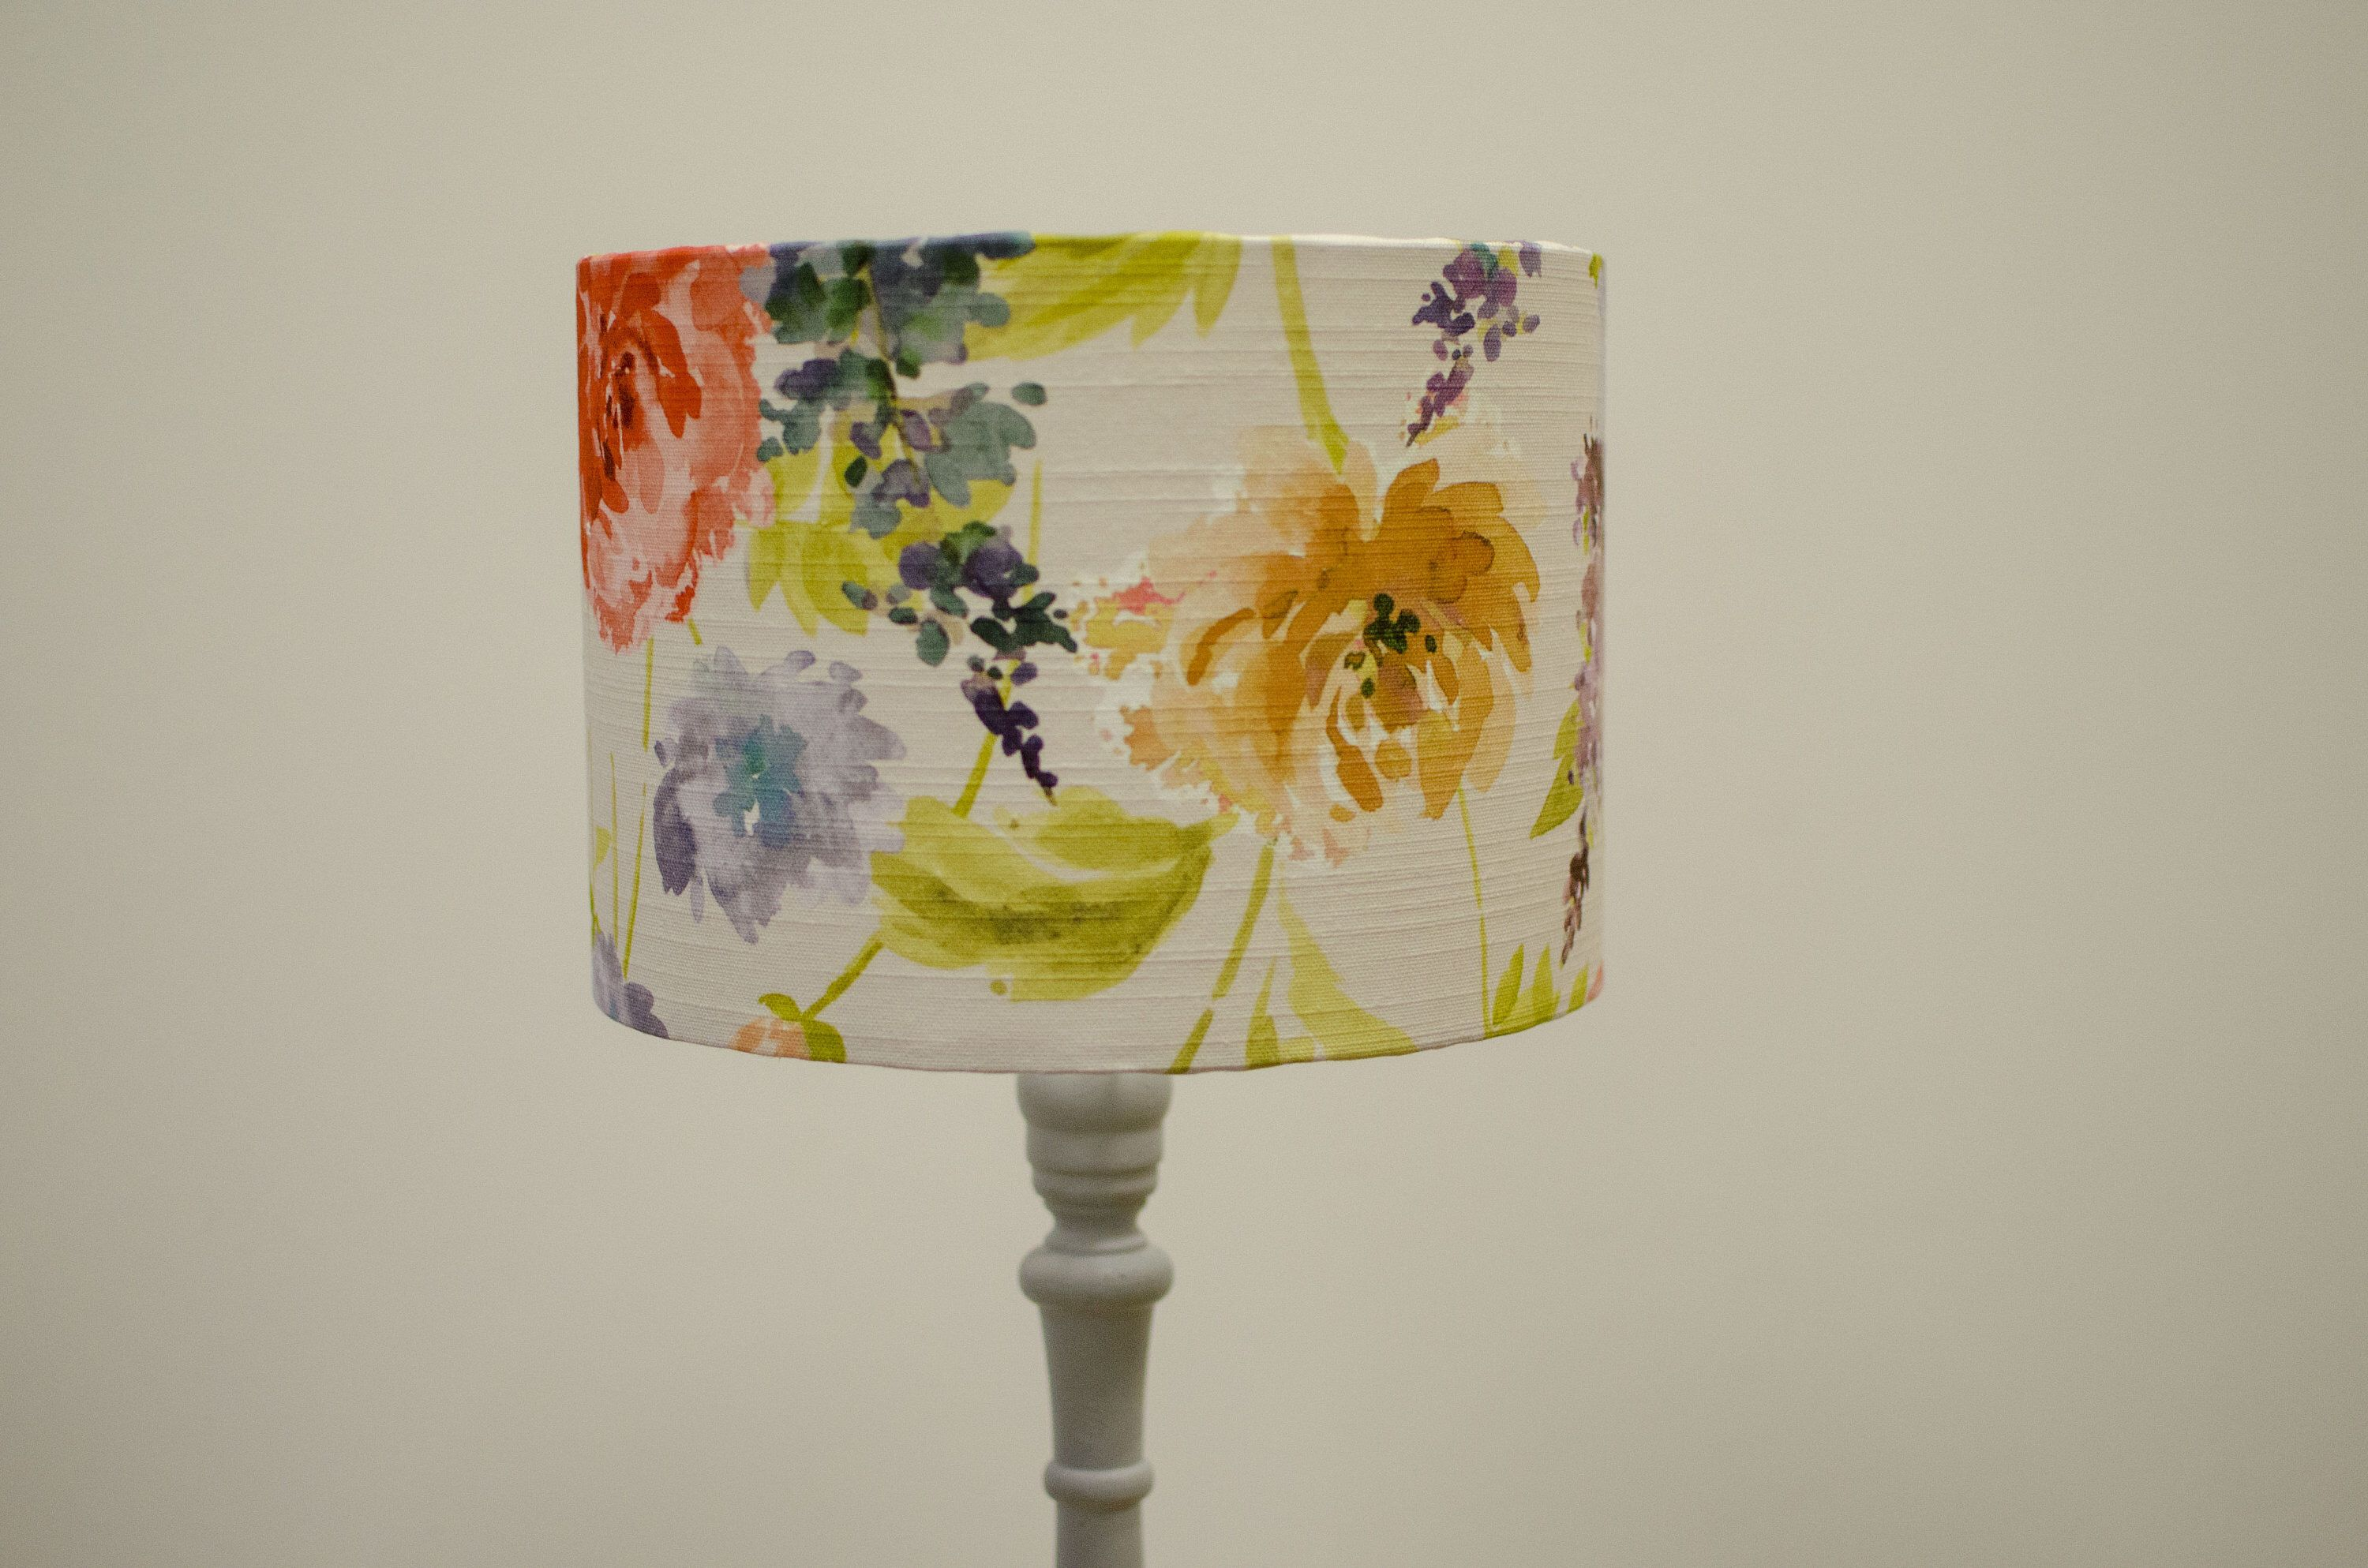 Watercolour Lamp Country Home Decor Watercolour Floral Floral Lampshades Floral Home Decor Country Lampshade